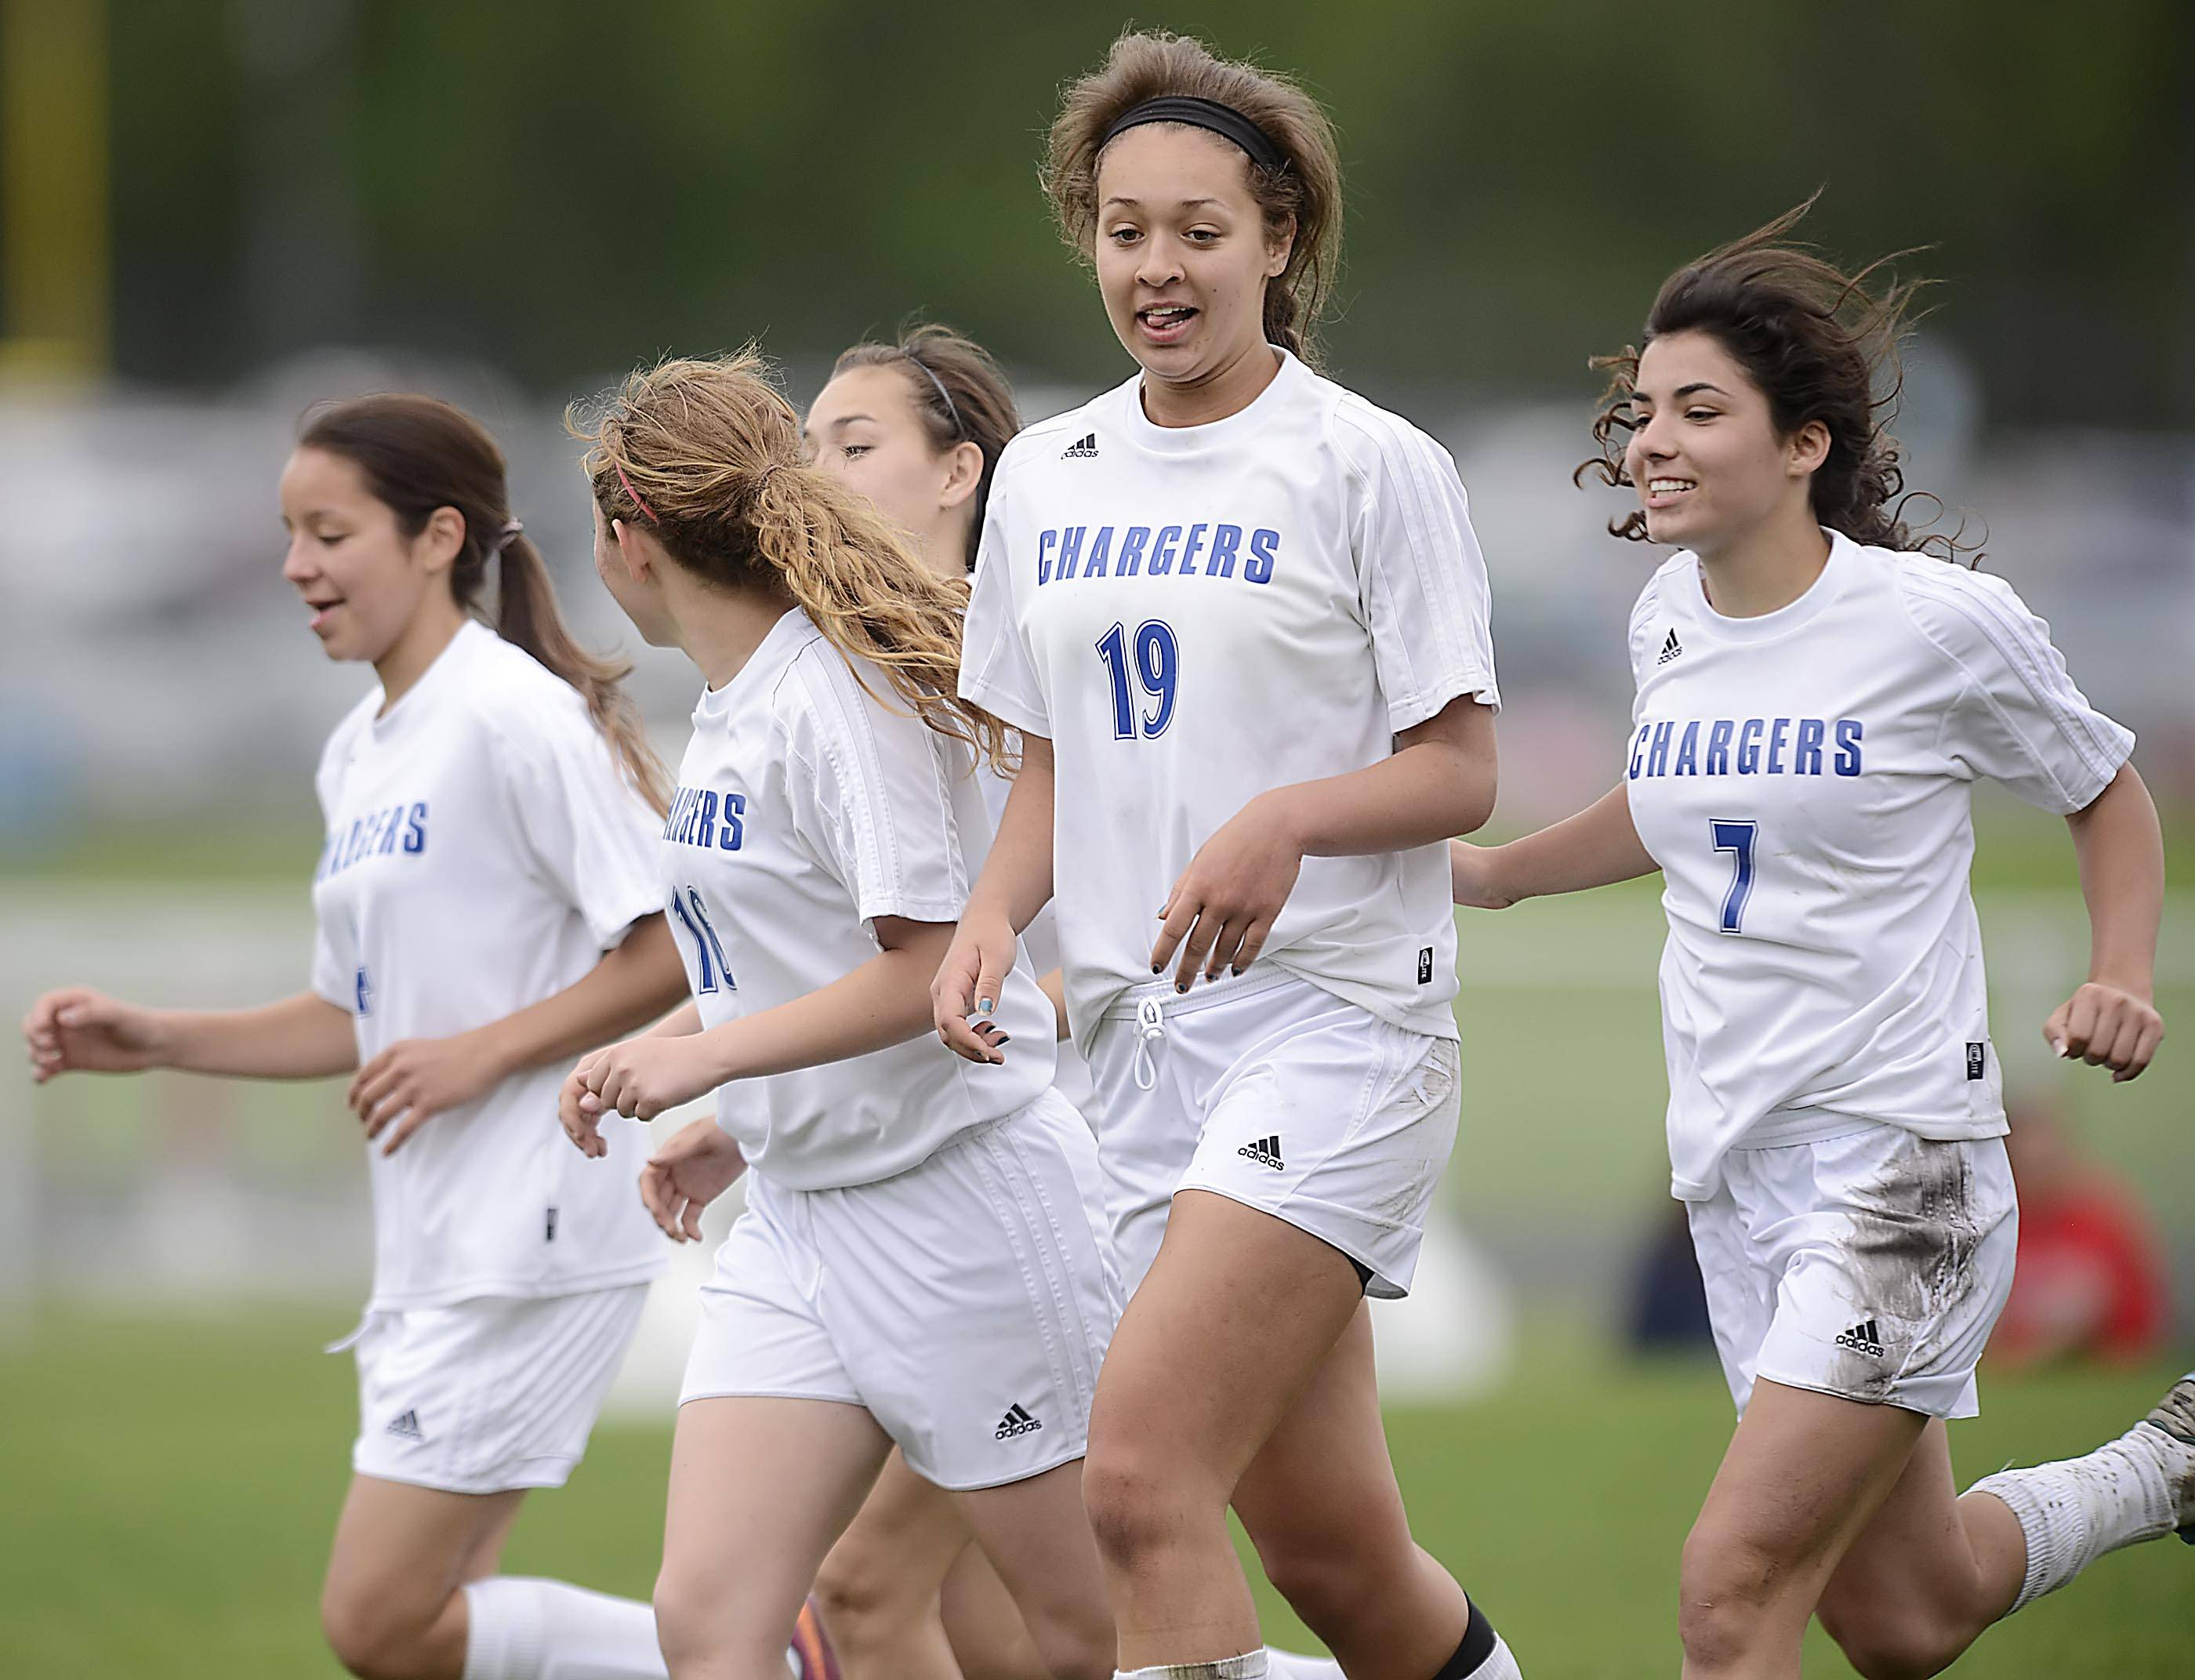 Dundee-Crown's Ashley Raby is surrounded by teammates after her second-half goal against Jacobs Tuesday in Carpentersville. It was the only score of the game.